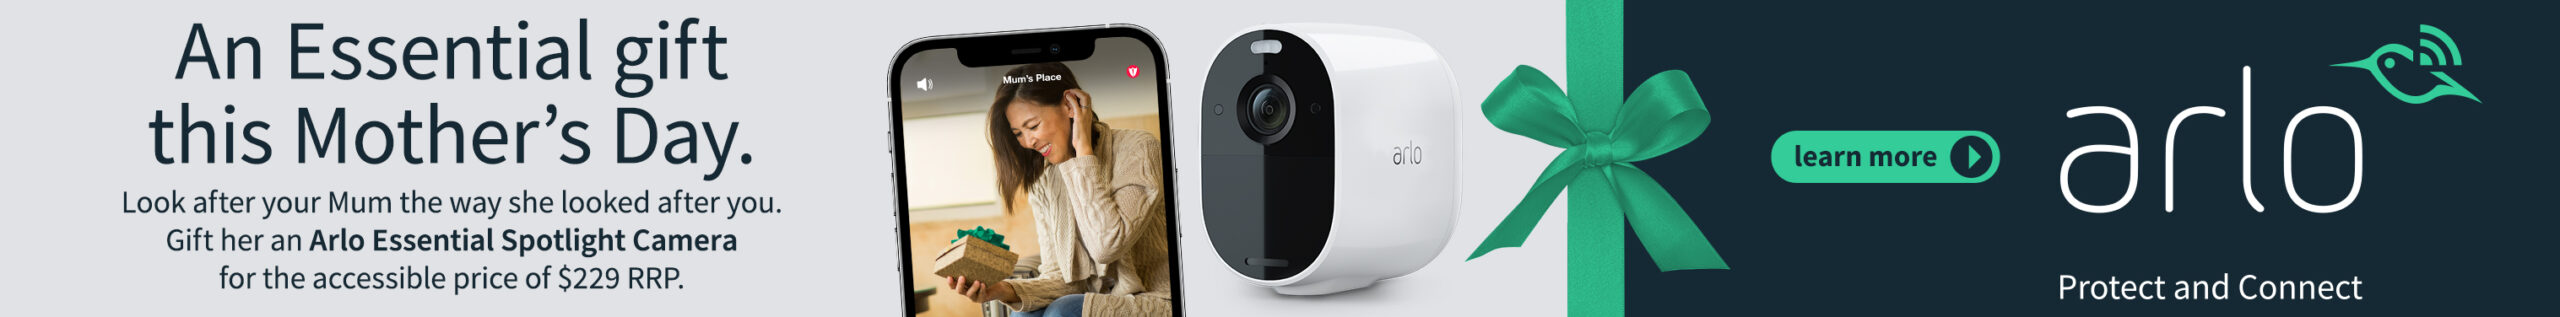 ARL0355 Arlo Essential Spotlight Mothers Day 2021 Banner 728x90 FA scaled Samsung Confirms Galaxy S9 Won't Launch At CES 2018